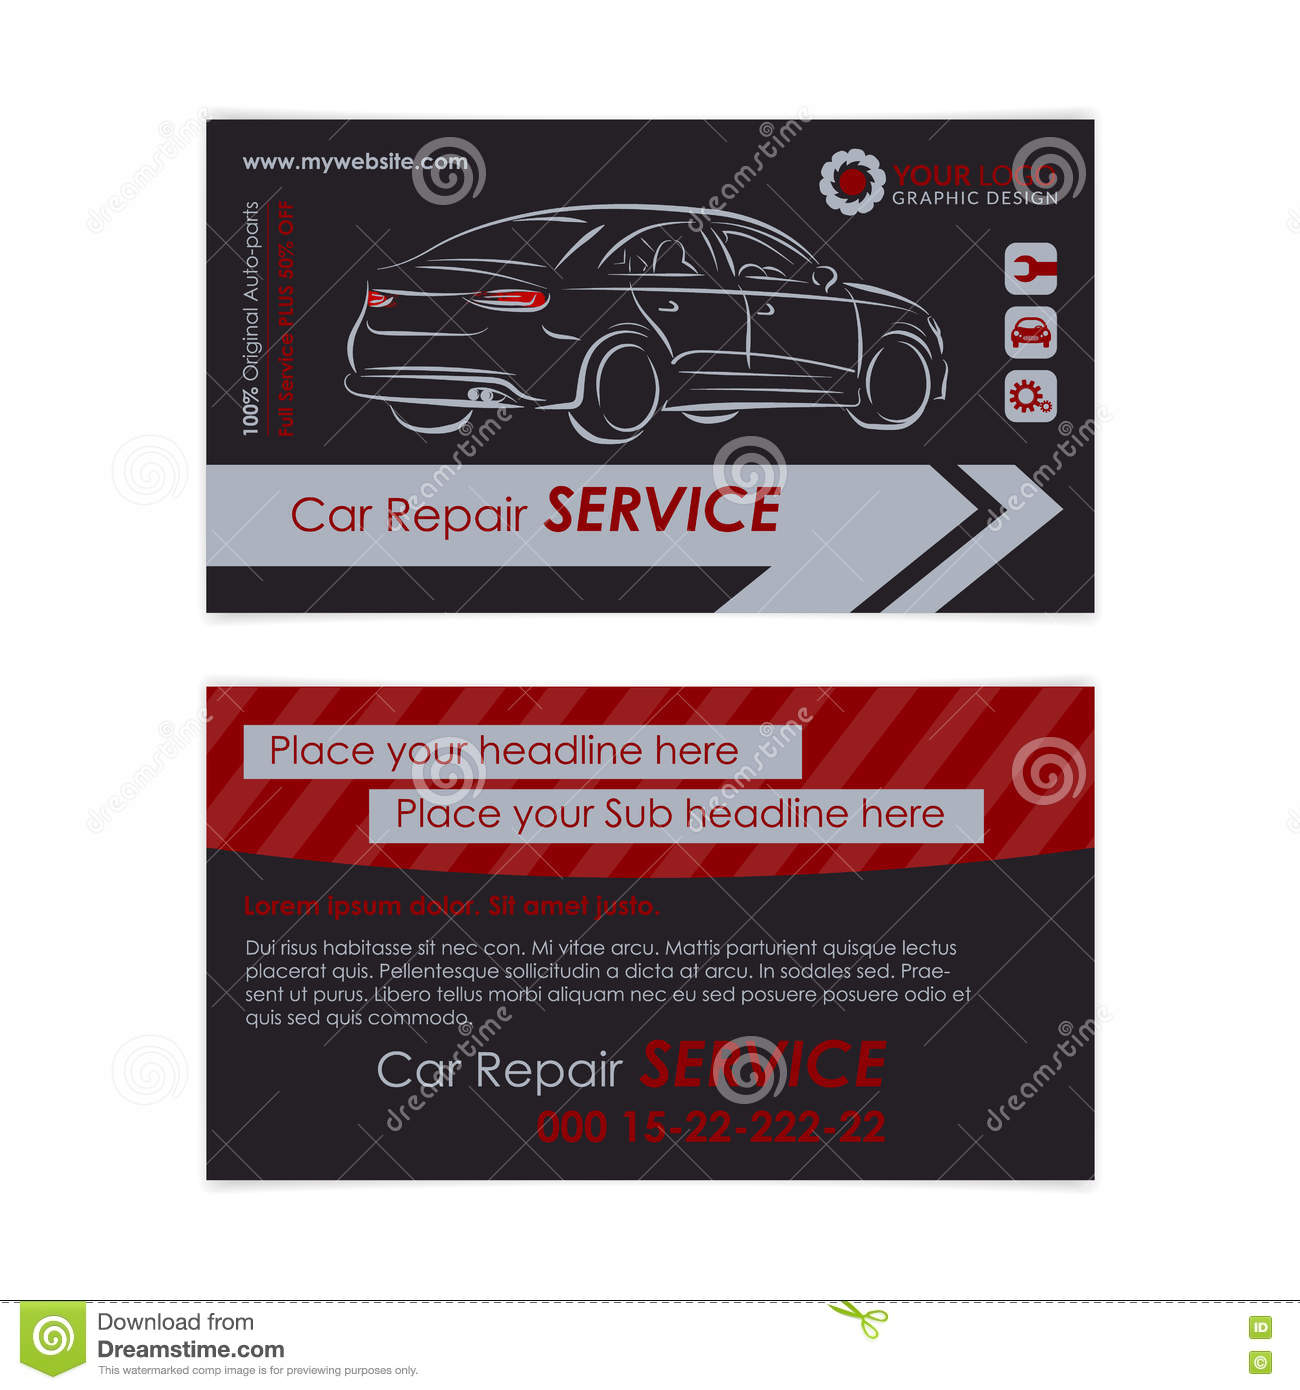 Auto repair business card template create your own business cards create your own business cards idea printable royalty free vector colourmoves